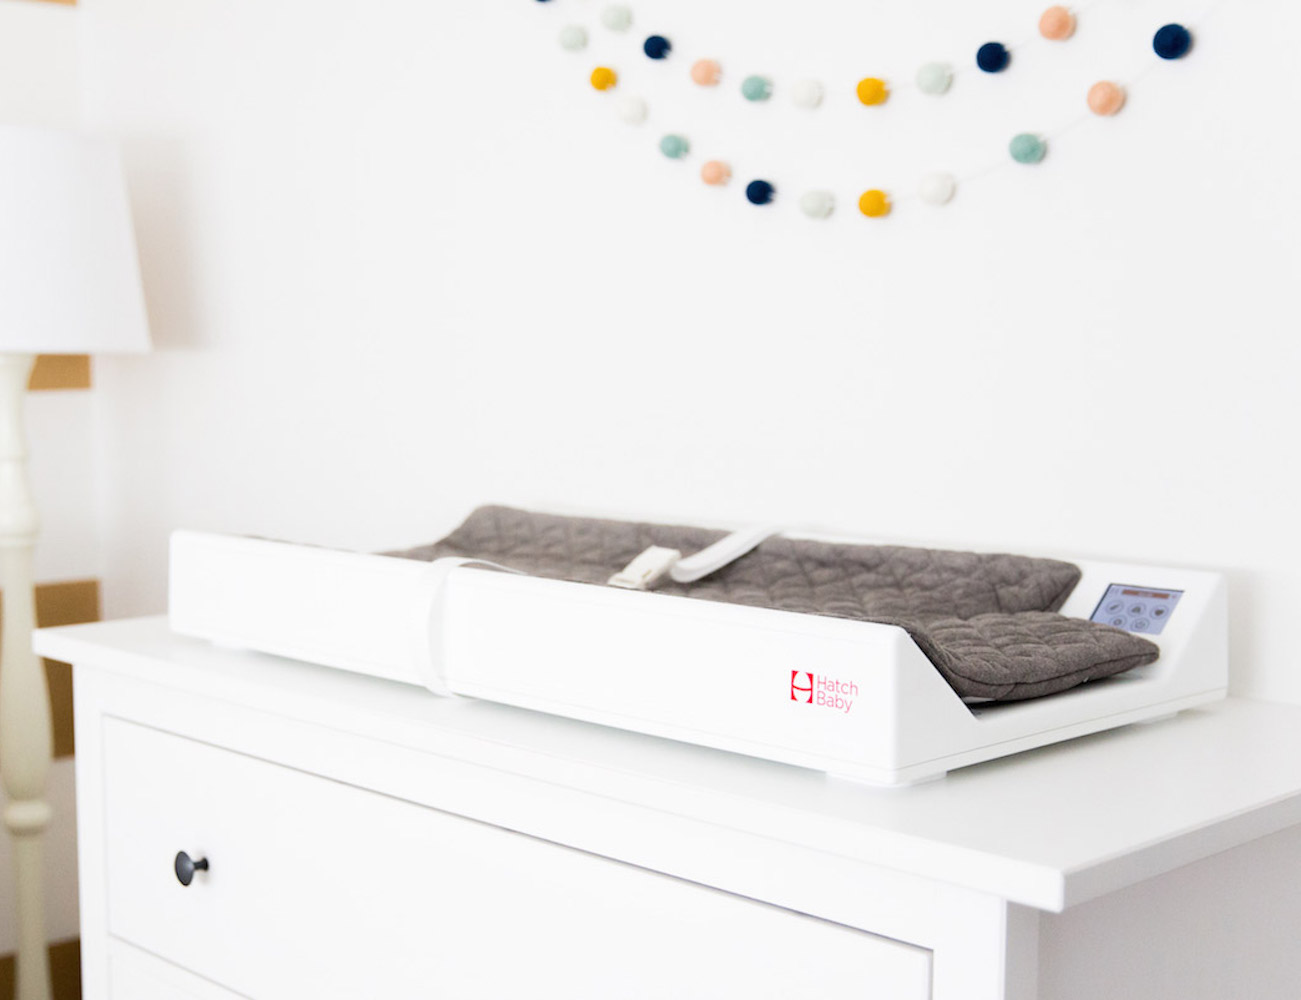 Hatch Baby Smart Changing Pad